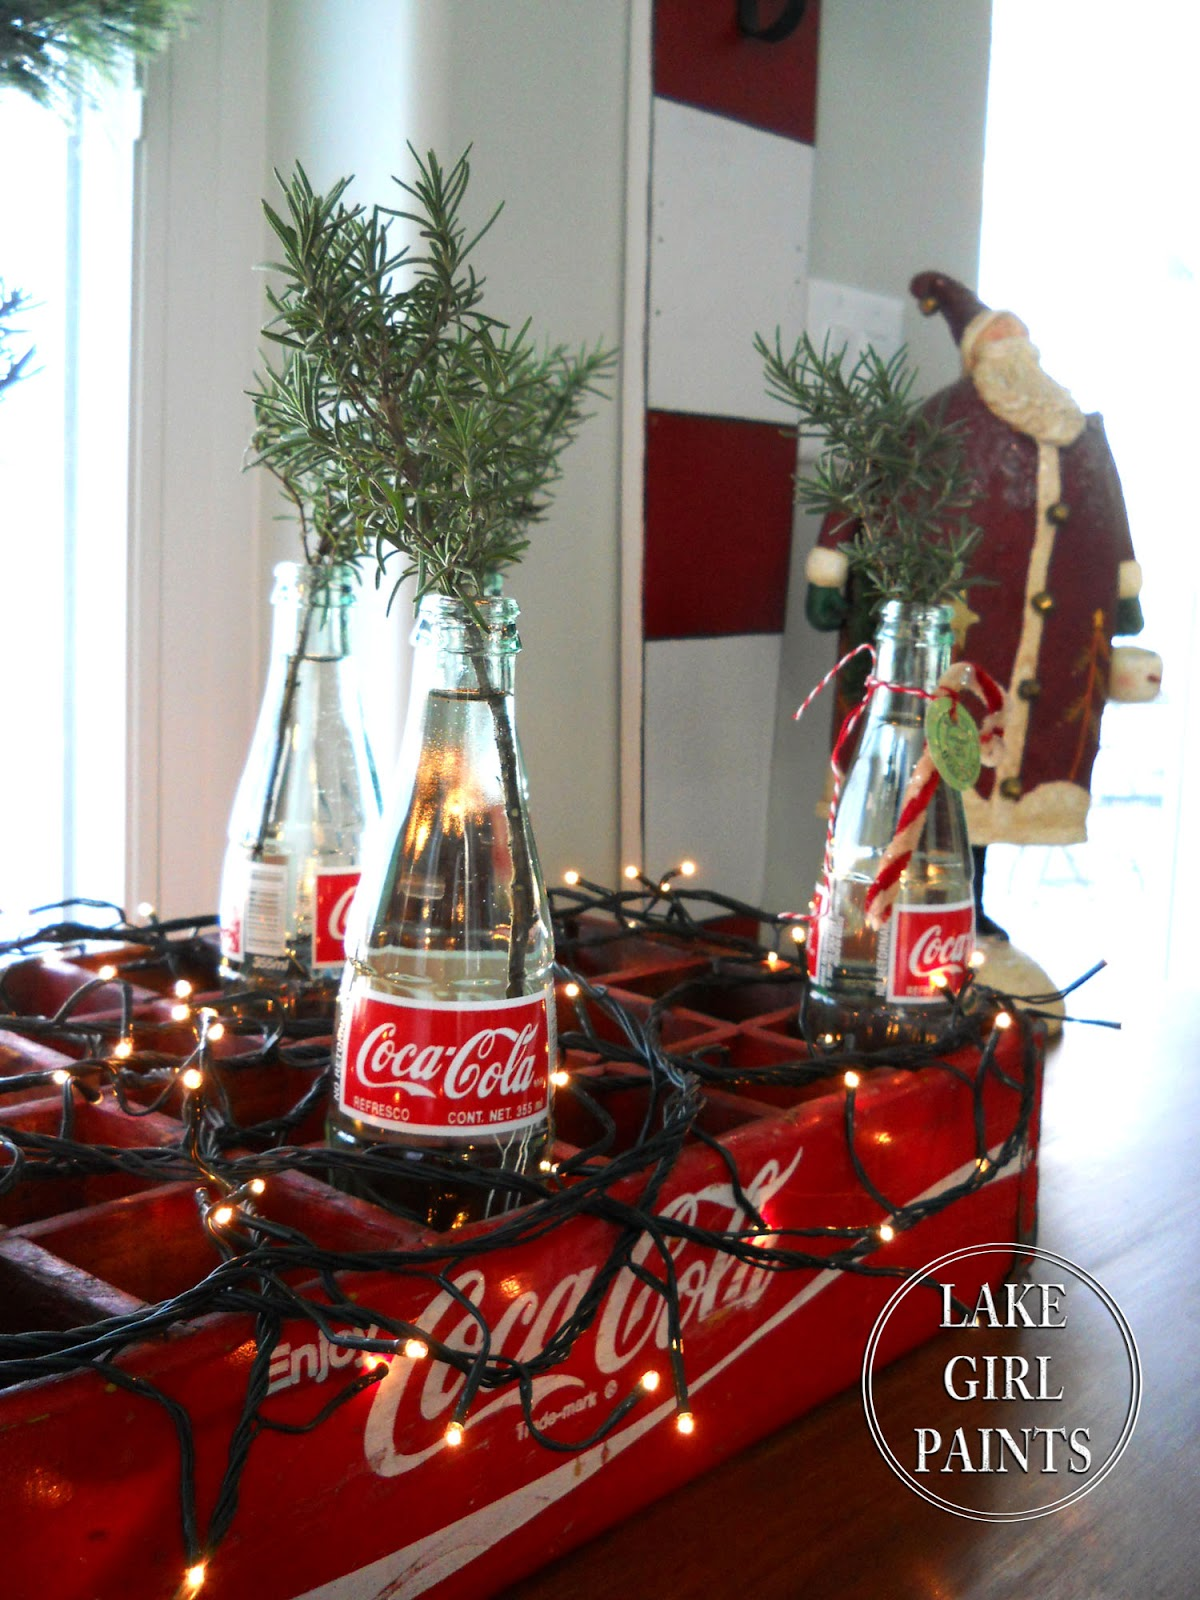 Lake Girl Paints: Coca-Cola Bottles with Rosemary Clippings